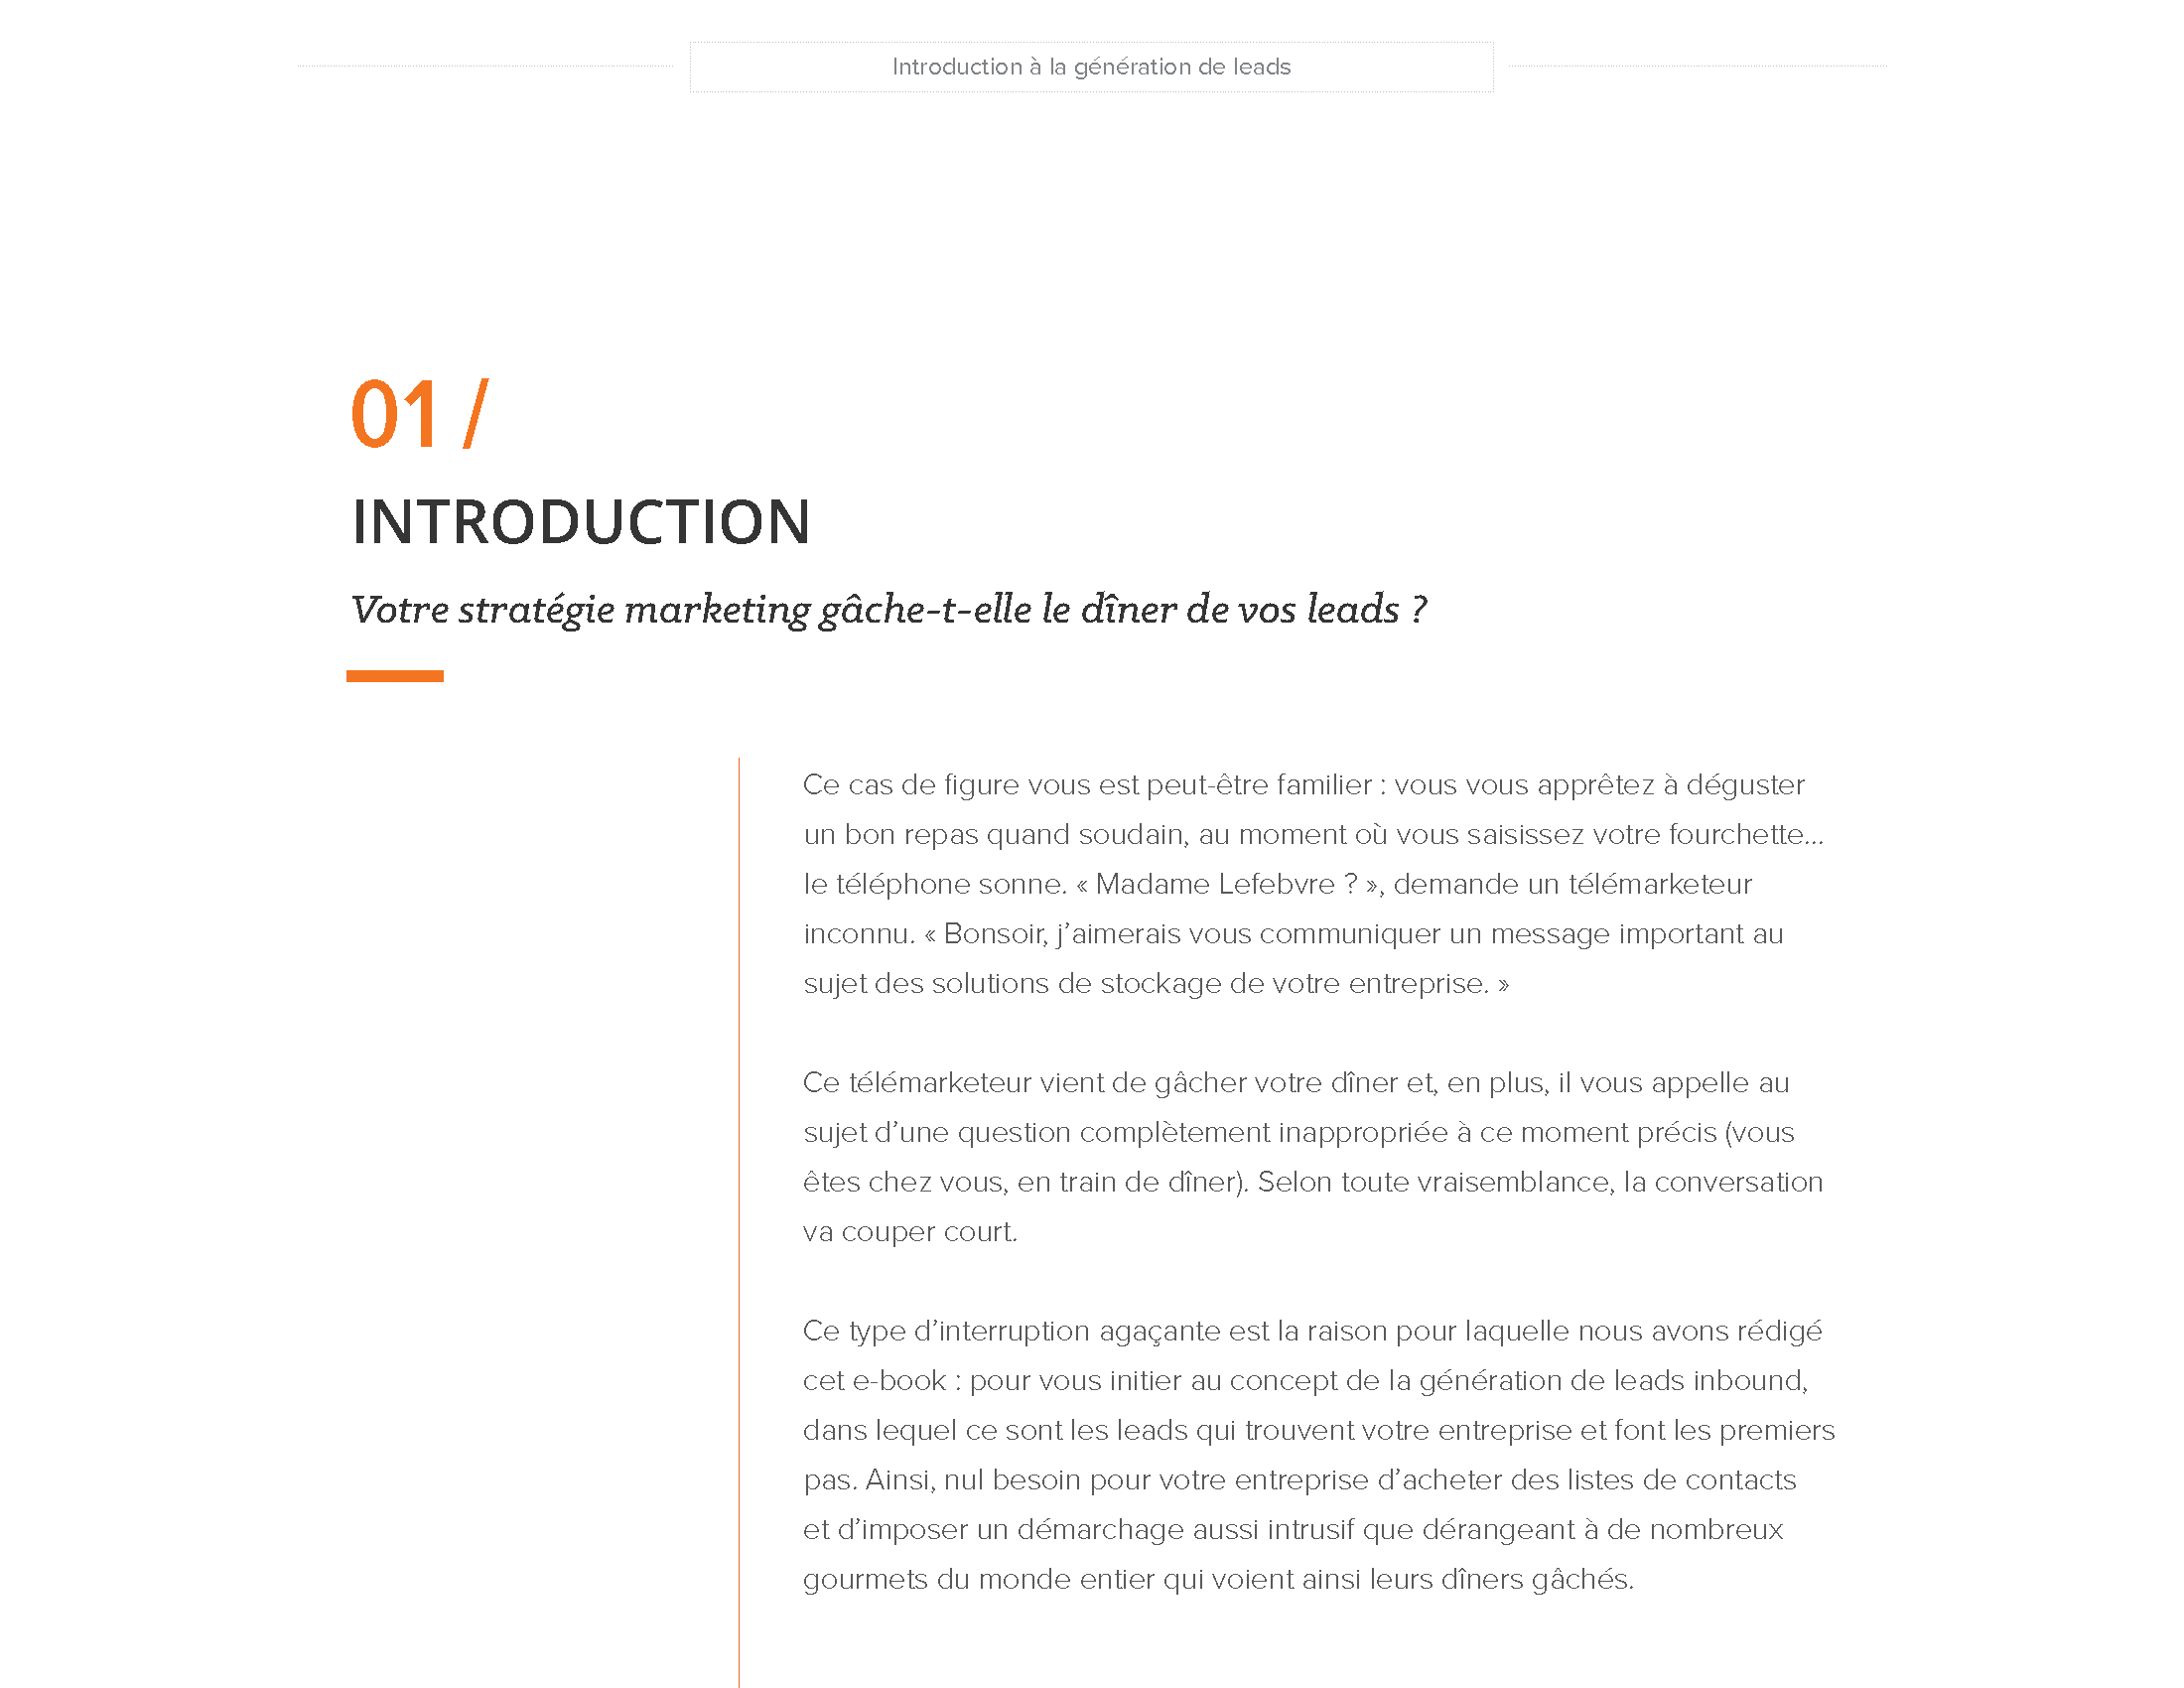 Introduction à la génération de leads - 3